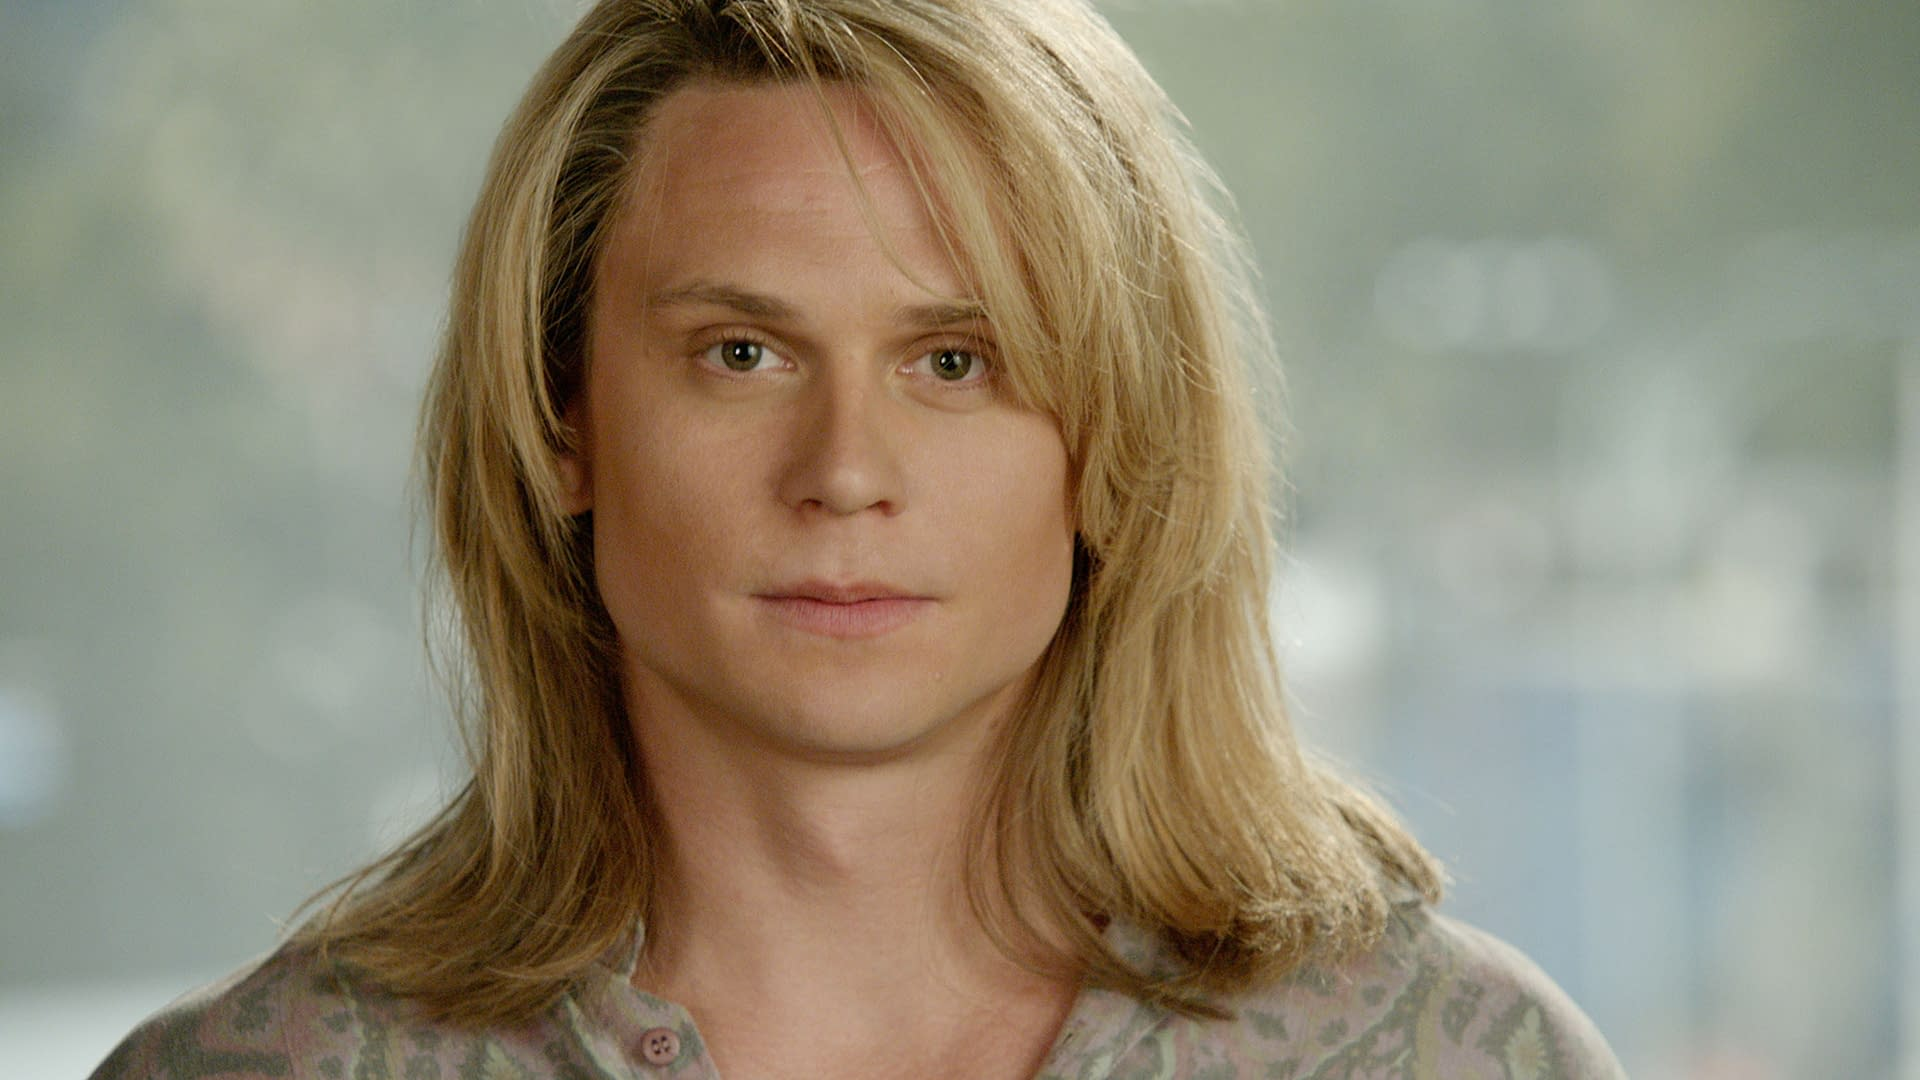 Disney Finds A Way To Put A White Guy In Aladdin, Casts Billy Magnussen As New Character